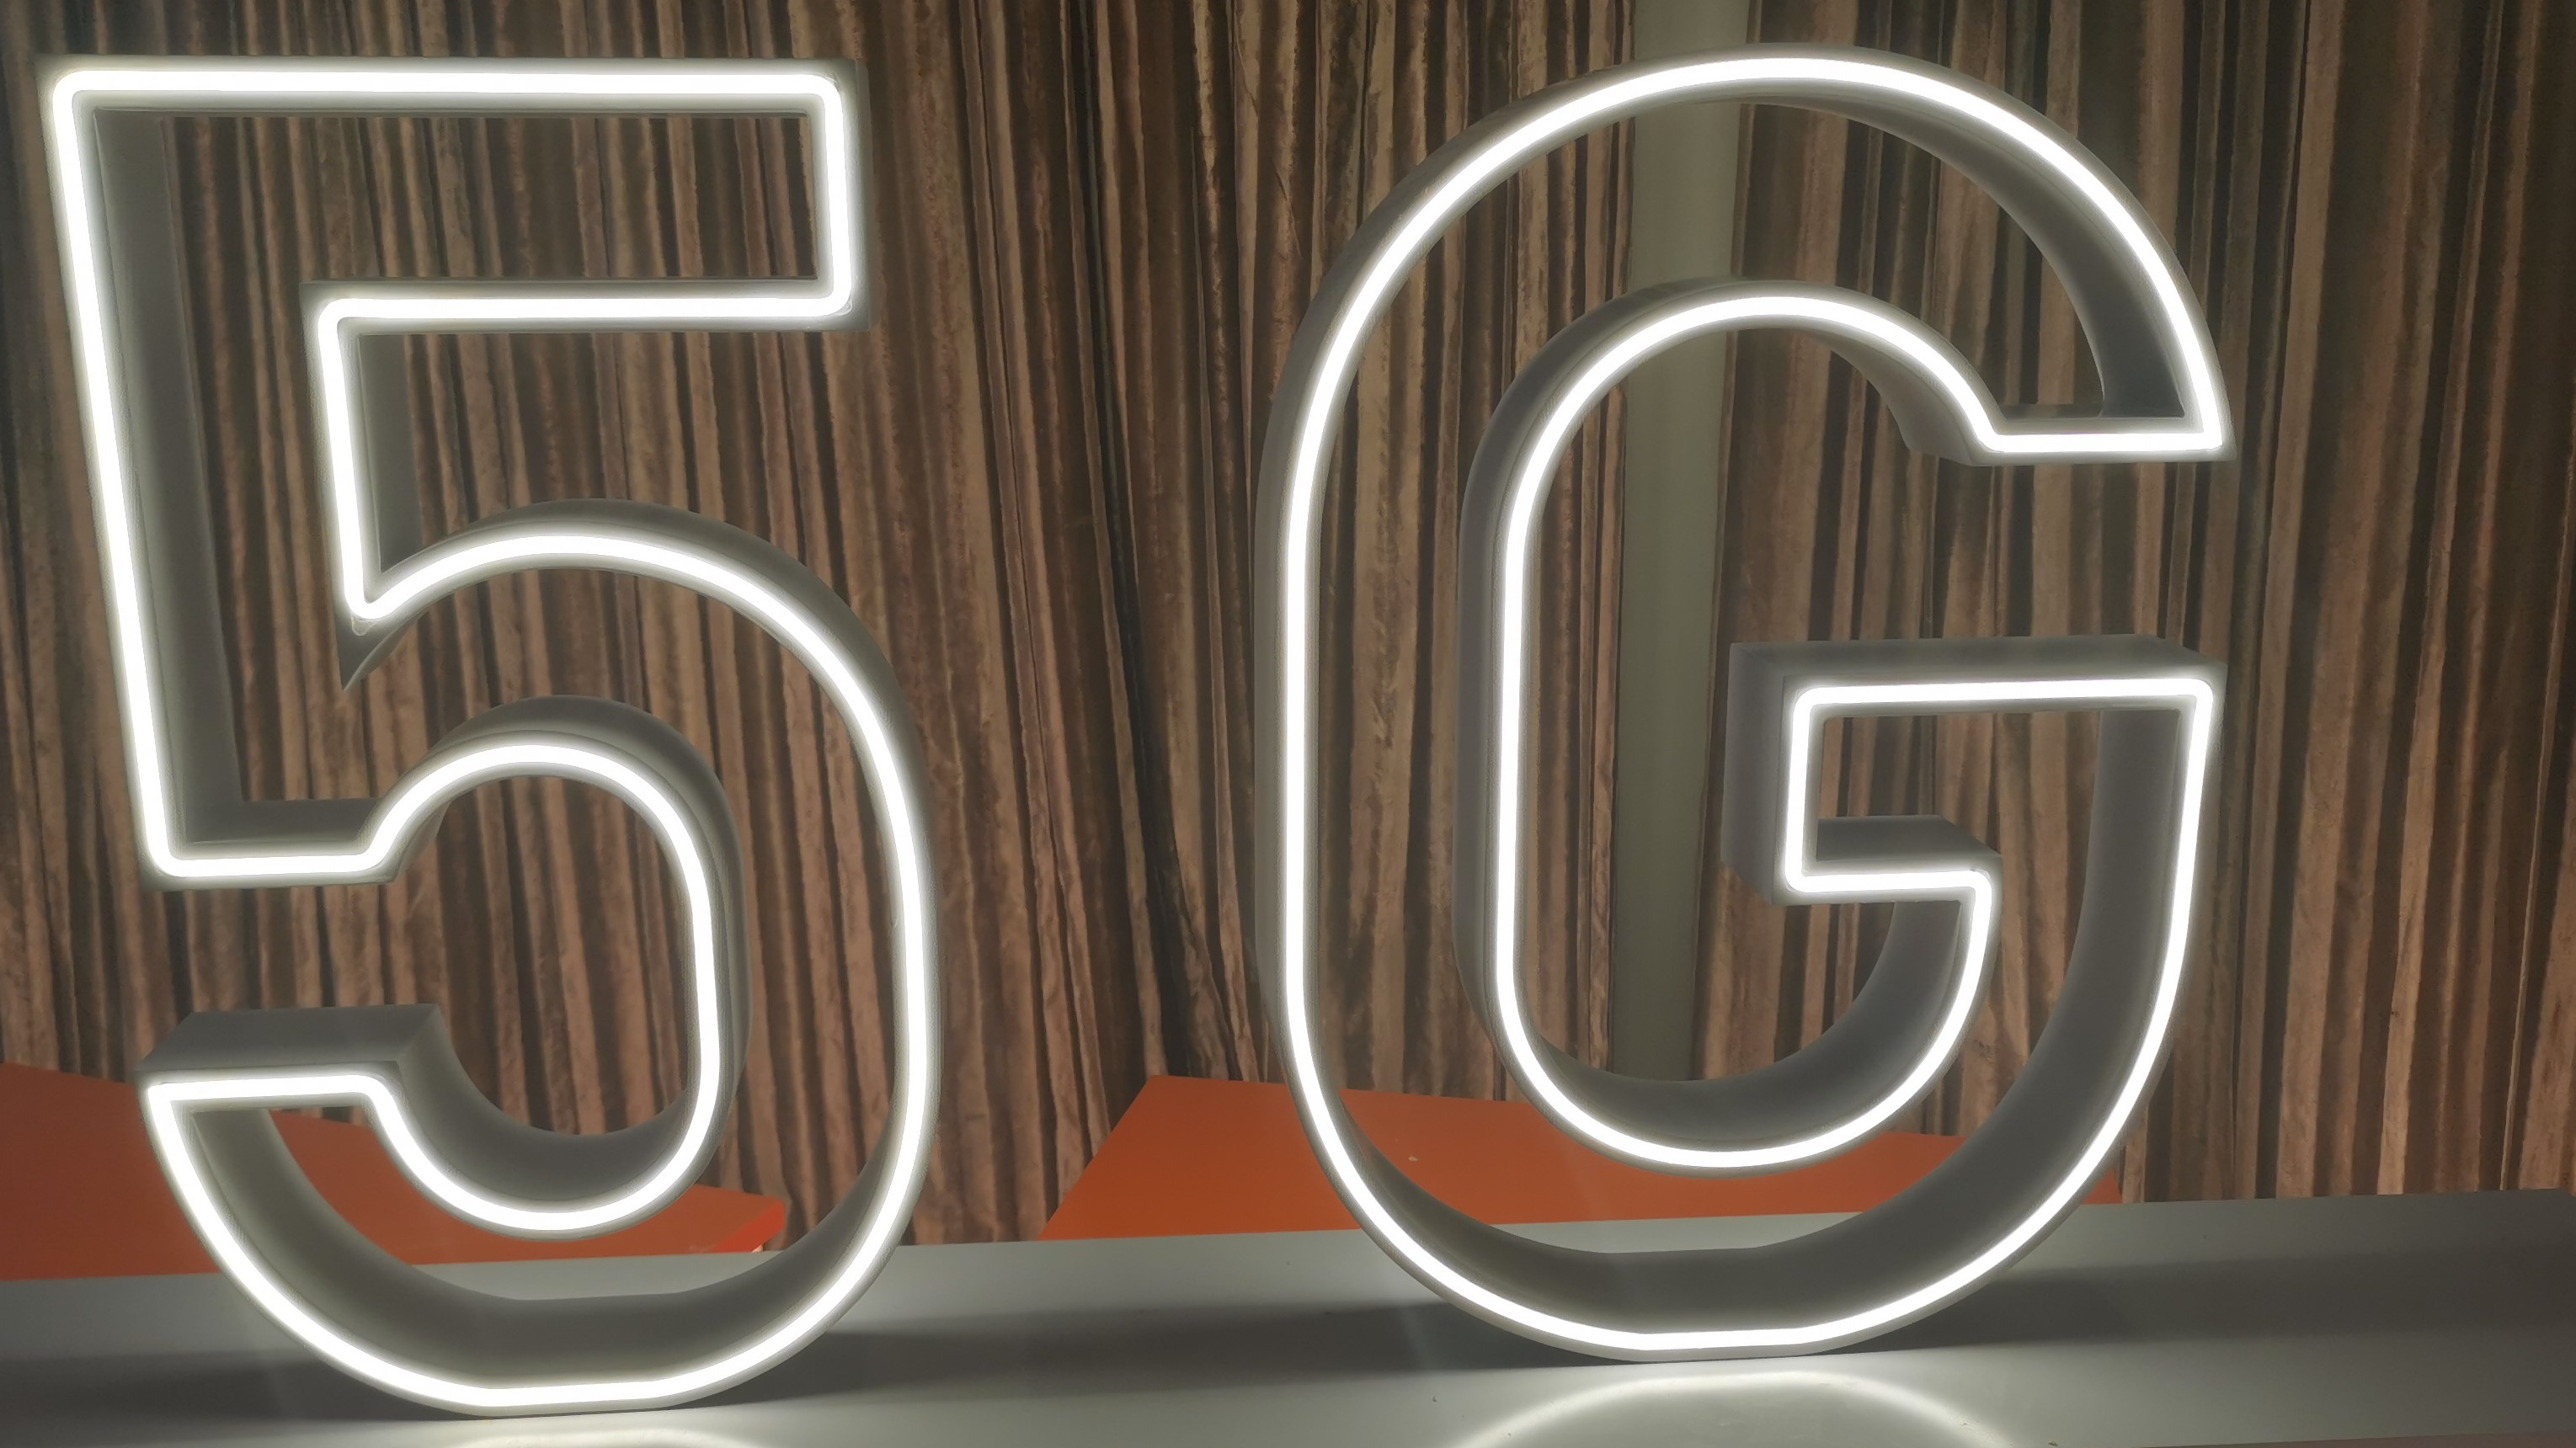 US wants Microsoft, Dell and others to develop Huawei 5G alternative